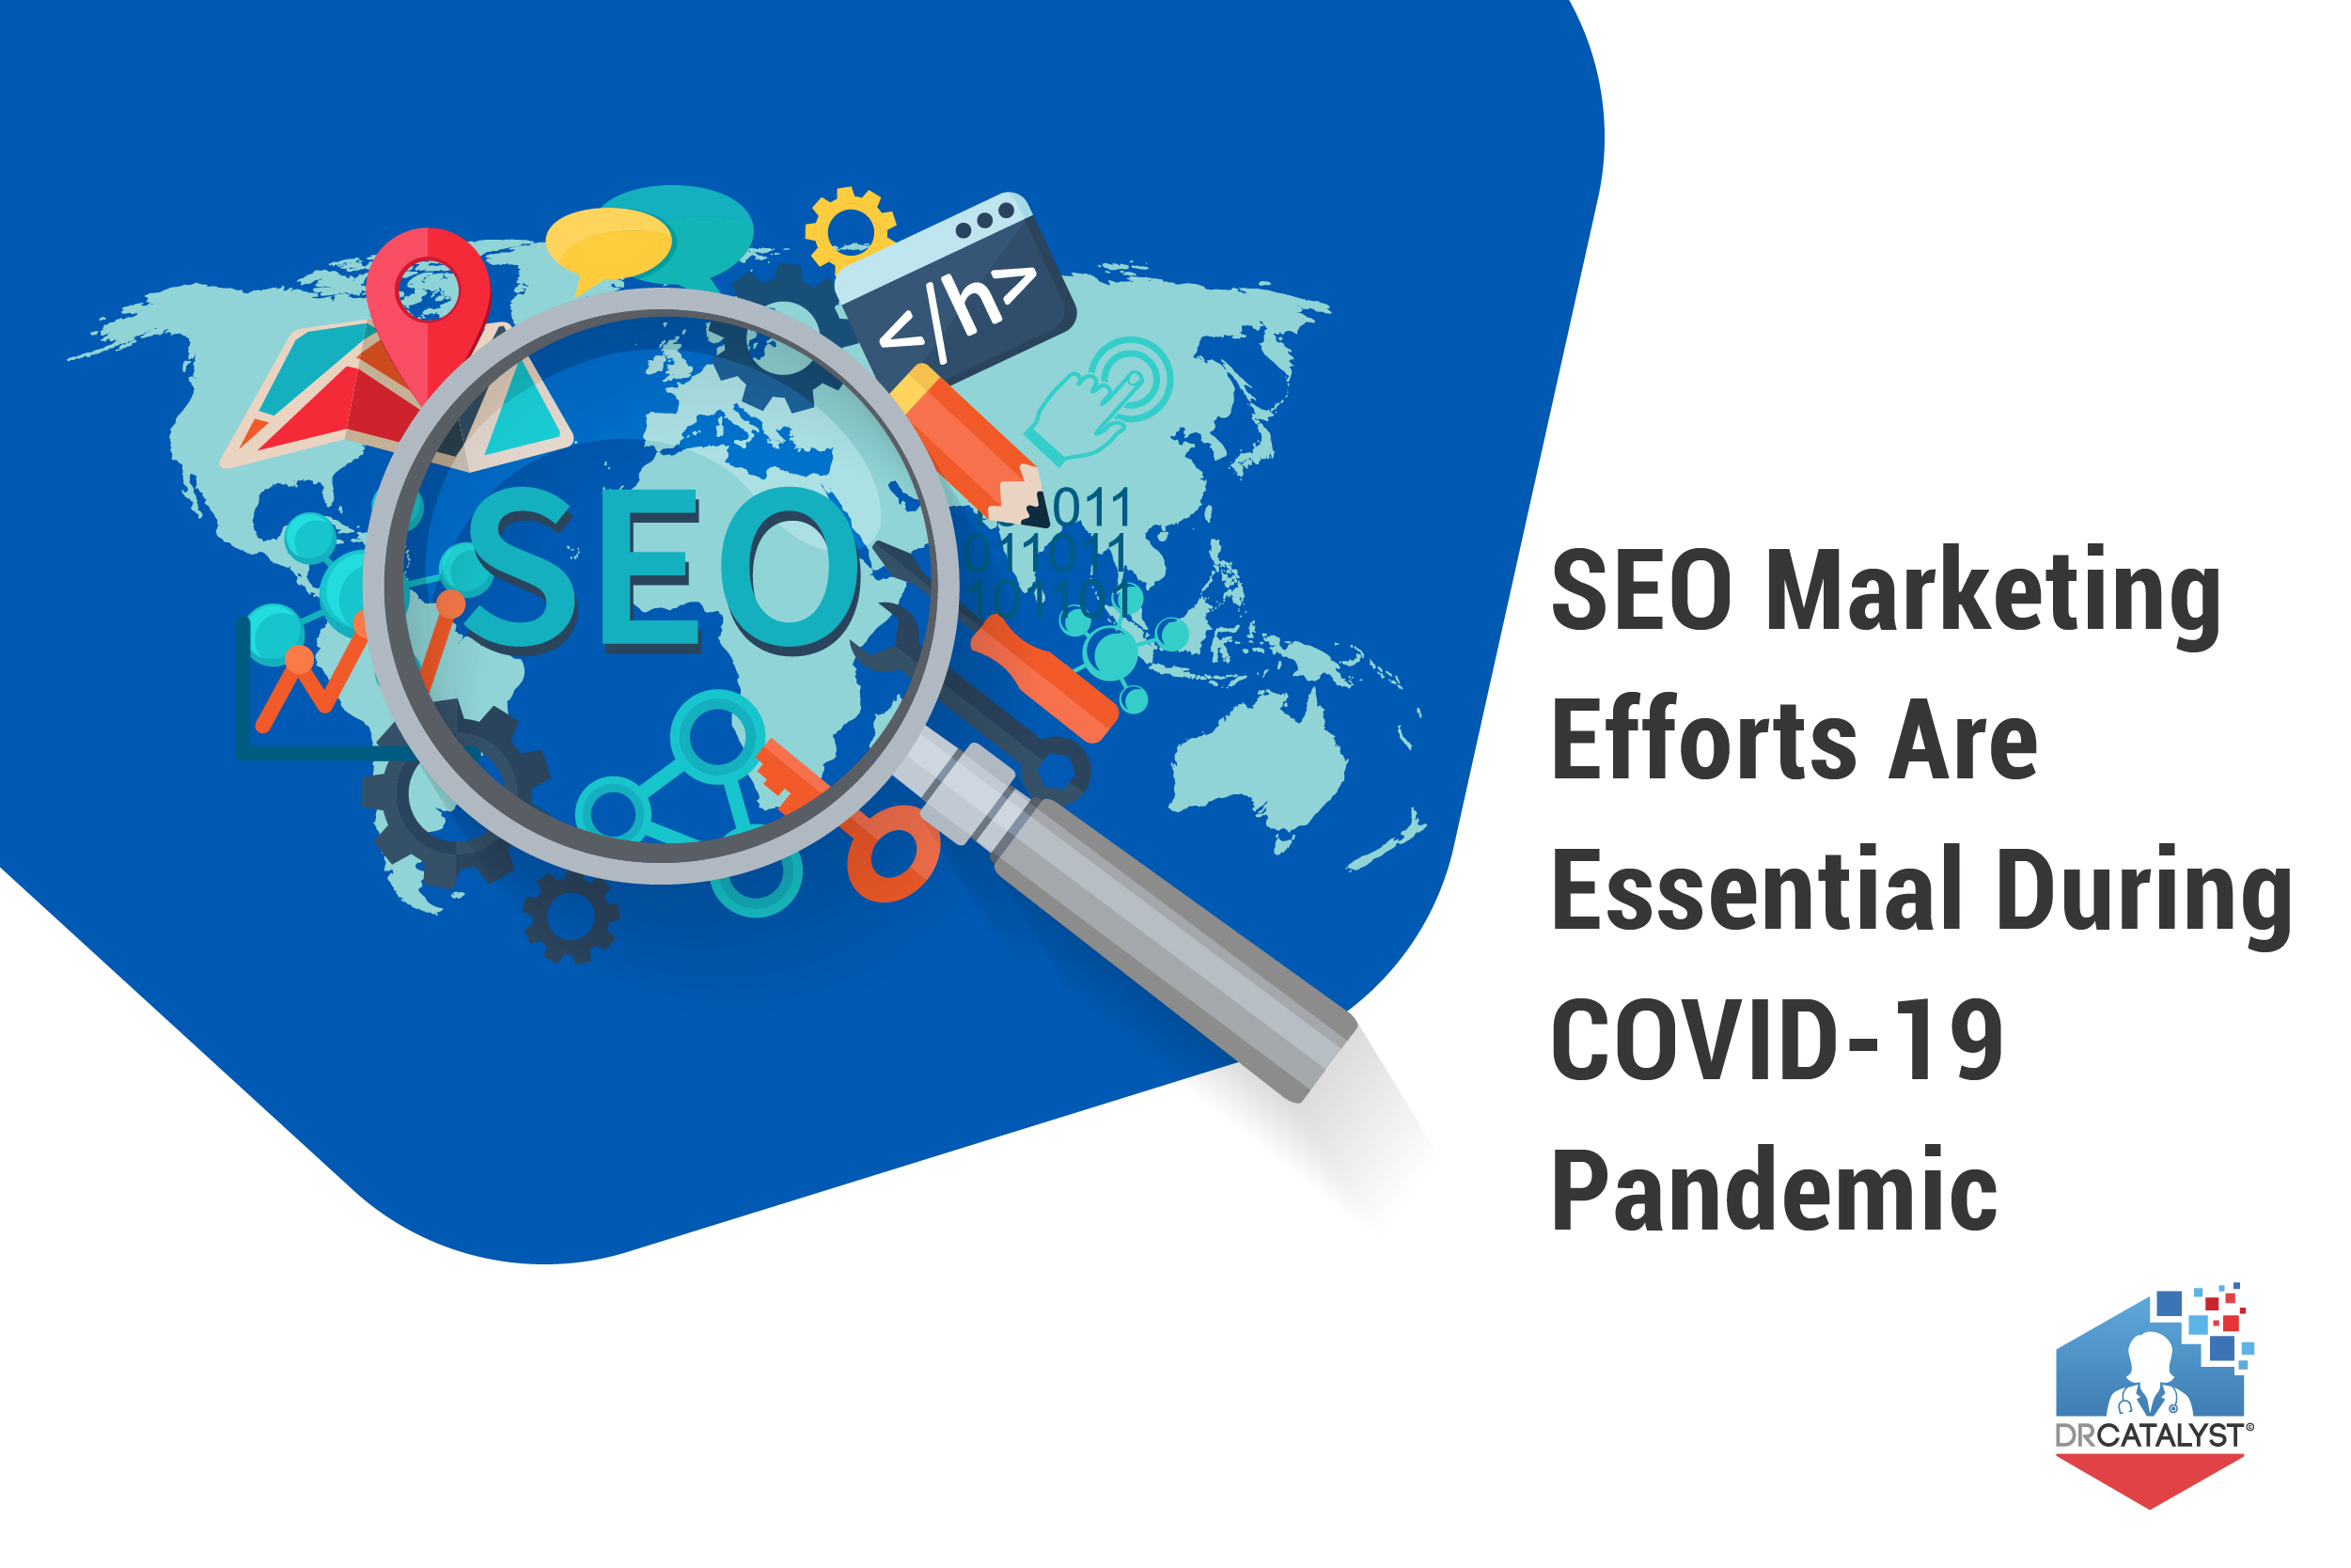 SEO Marketing Efforts